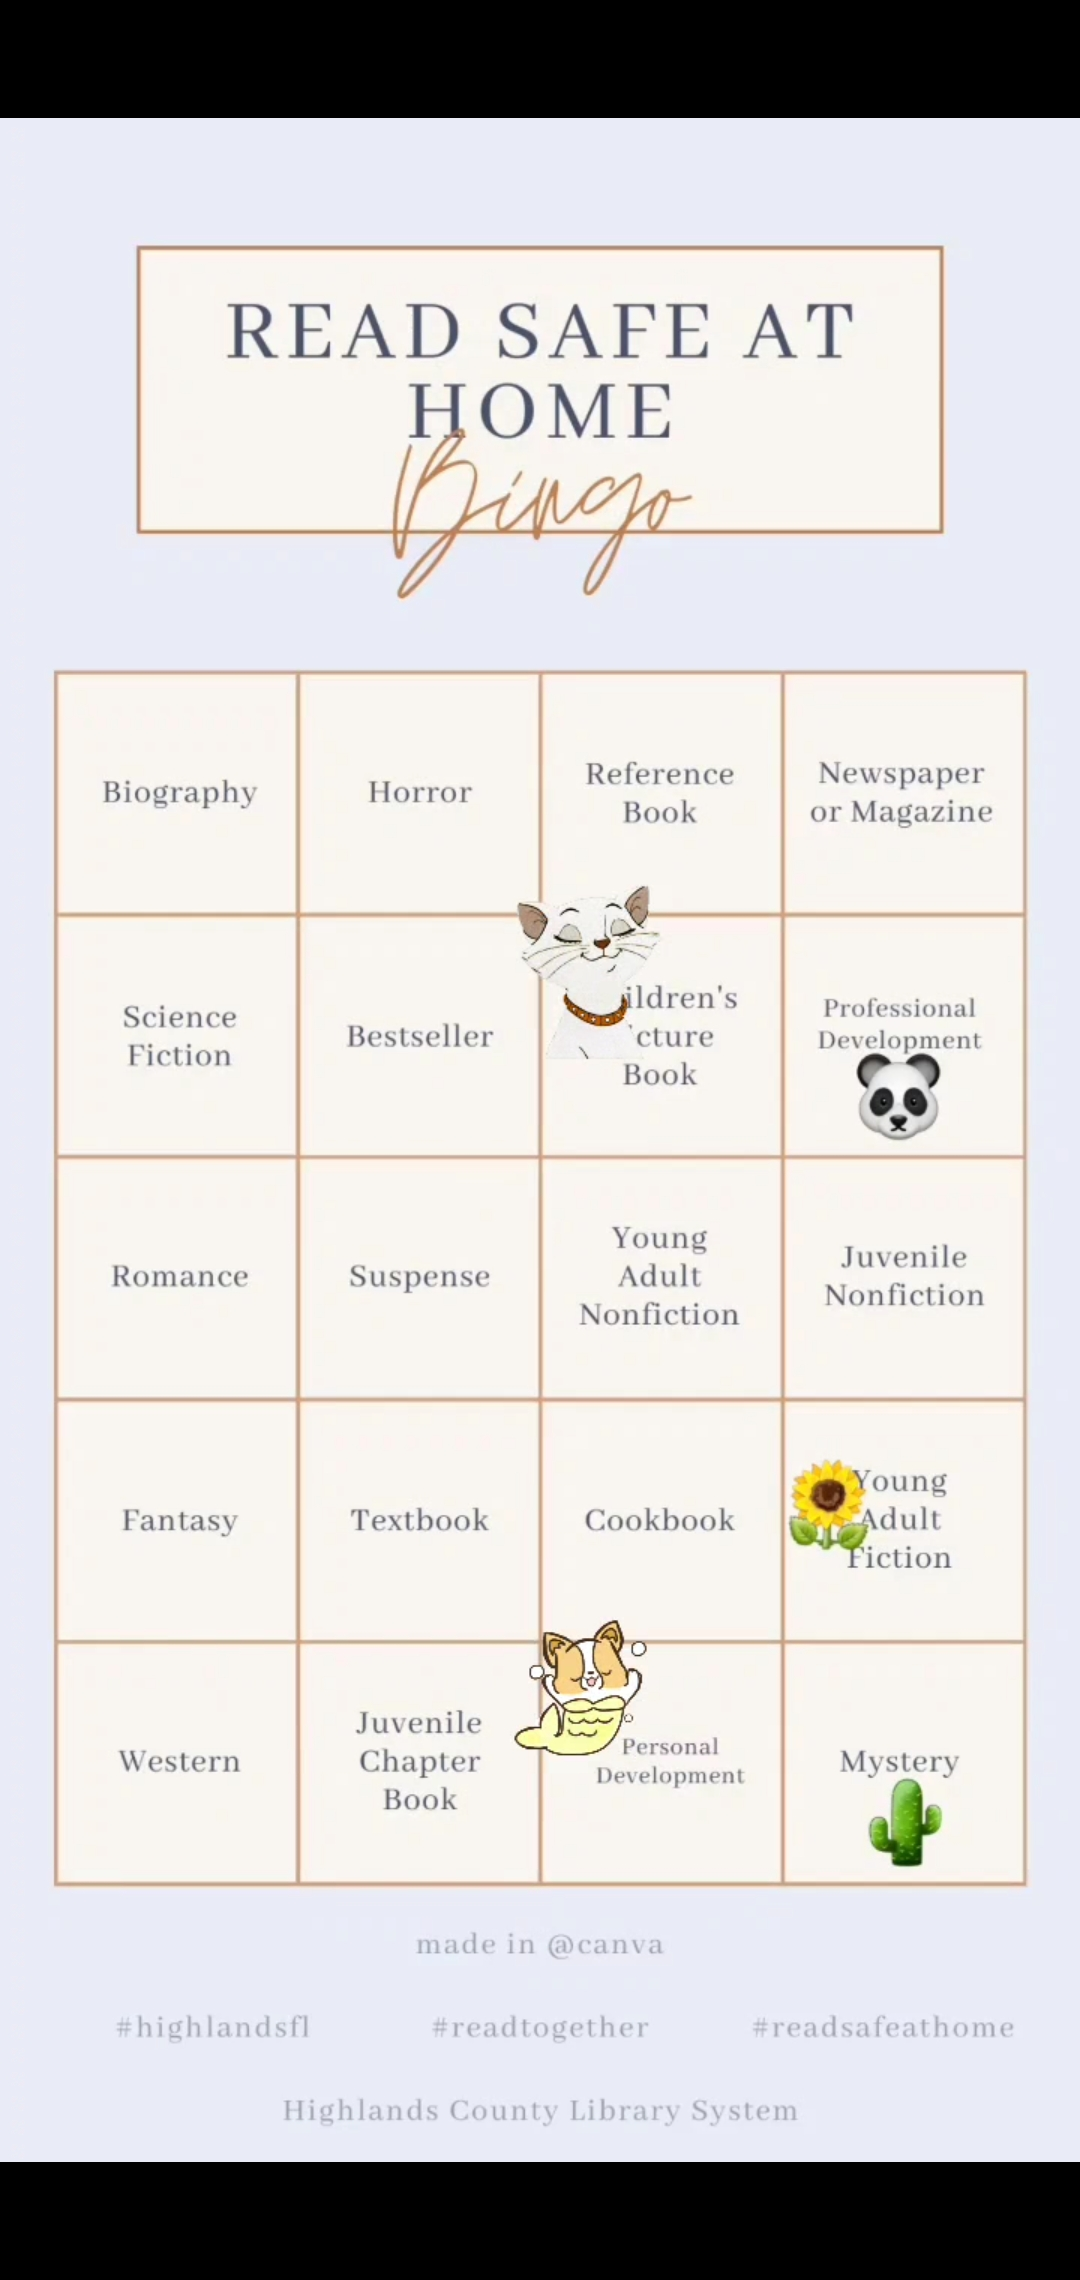 Let's play bingo! Here's a fun way to share with friends and family what you have been reading. Take a screenshot of the blank bingo card and I add your own emojis or gifs. Our Highlands Library System Manager, Vikki, has shared a bingo card with what she has been reading in her free time. Share & have fun! Tag your bingo cards as #highlandsfl #readhighlandsfl #librarybingo